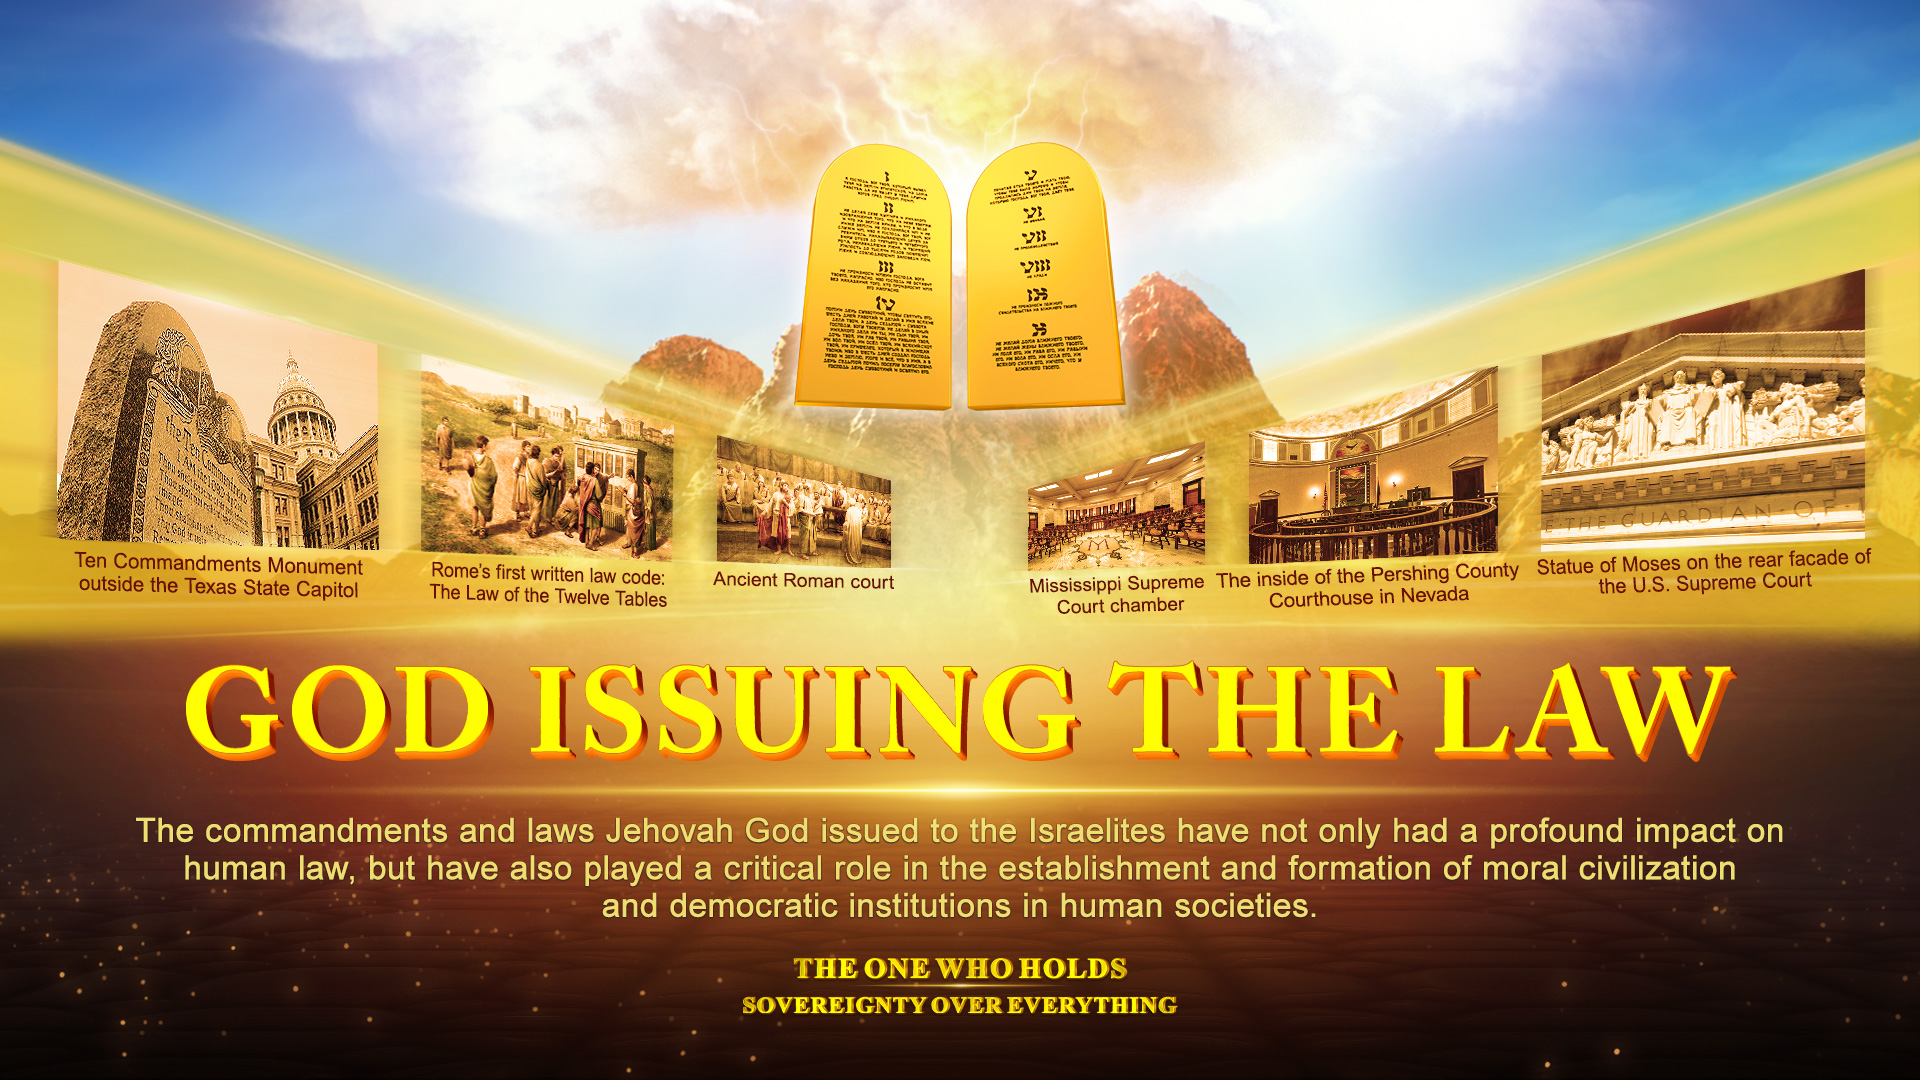 20-6 Christian Documentary Trailer _The One Who Holds Sovereignty Over Everything_ _ Issuing the Law